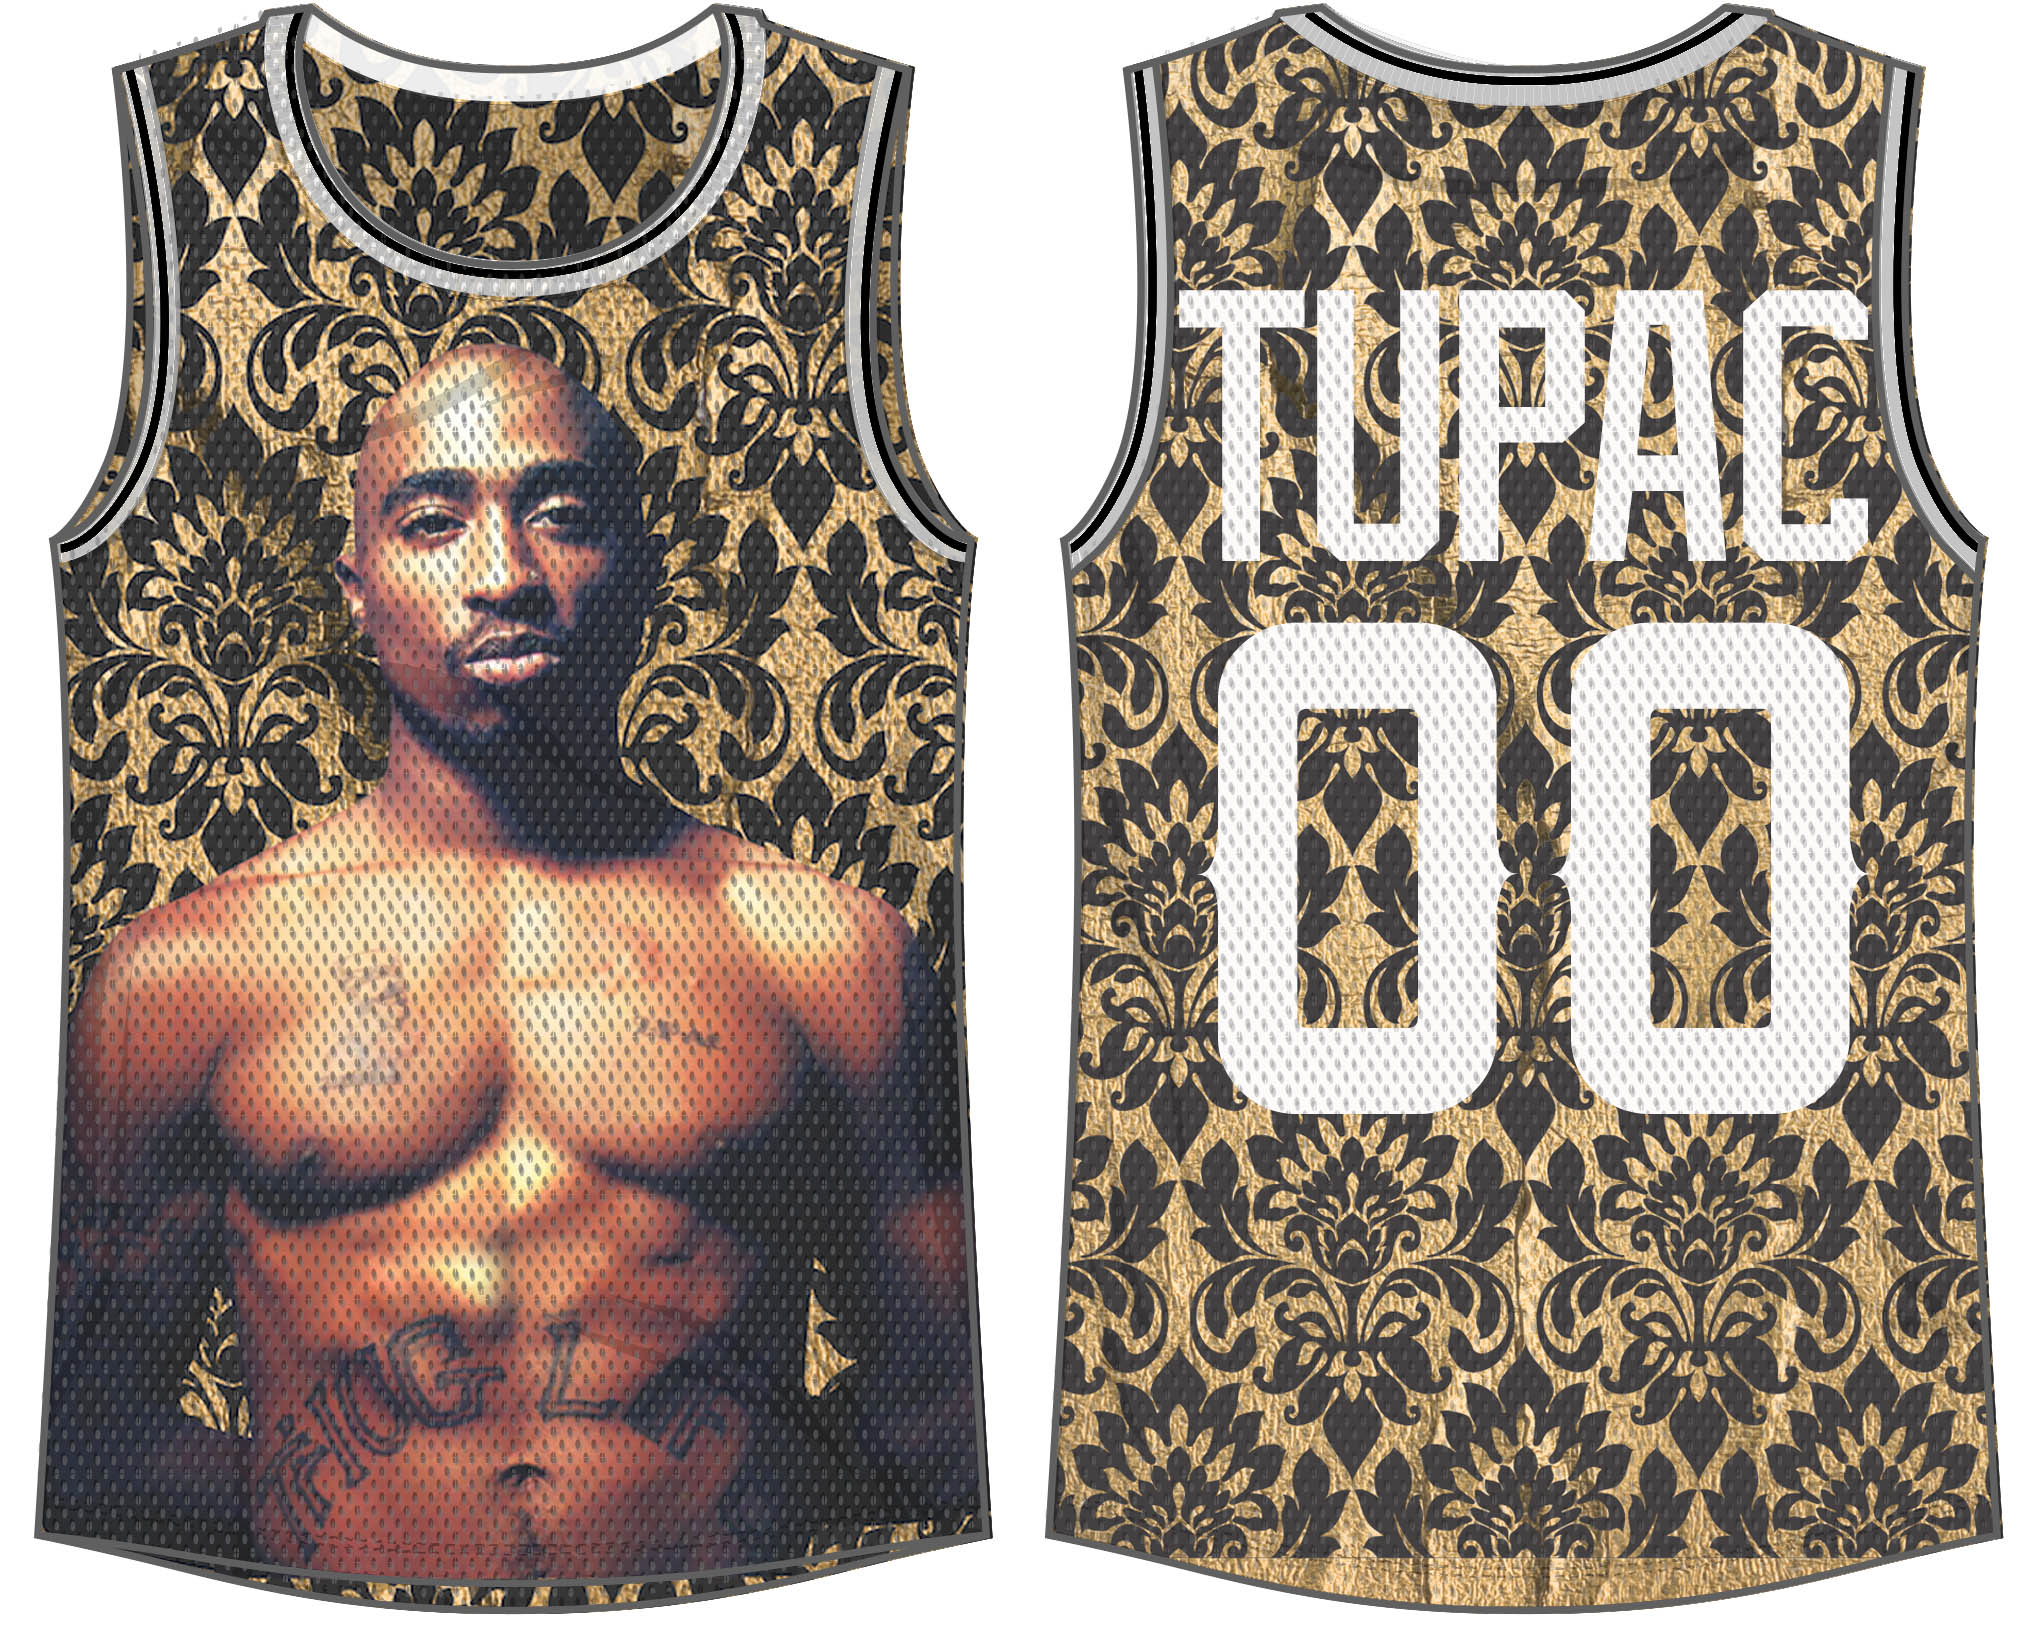 Photographer Sues Forever 21, Urban Outfitters Over Tupac T-Shirt